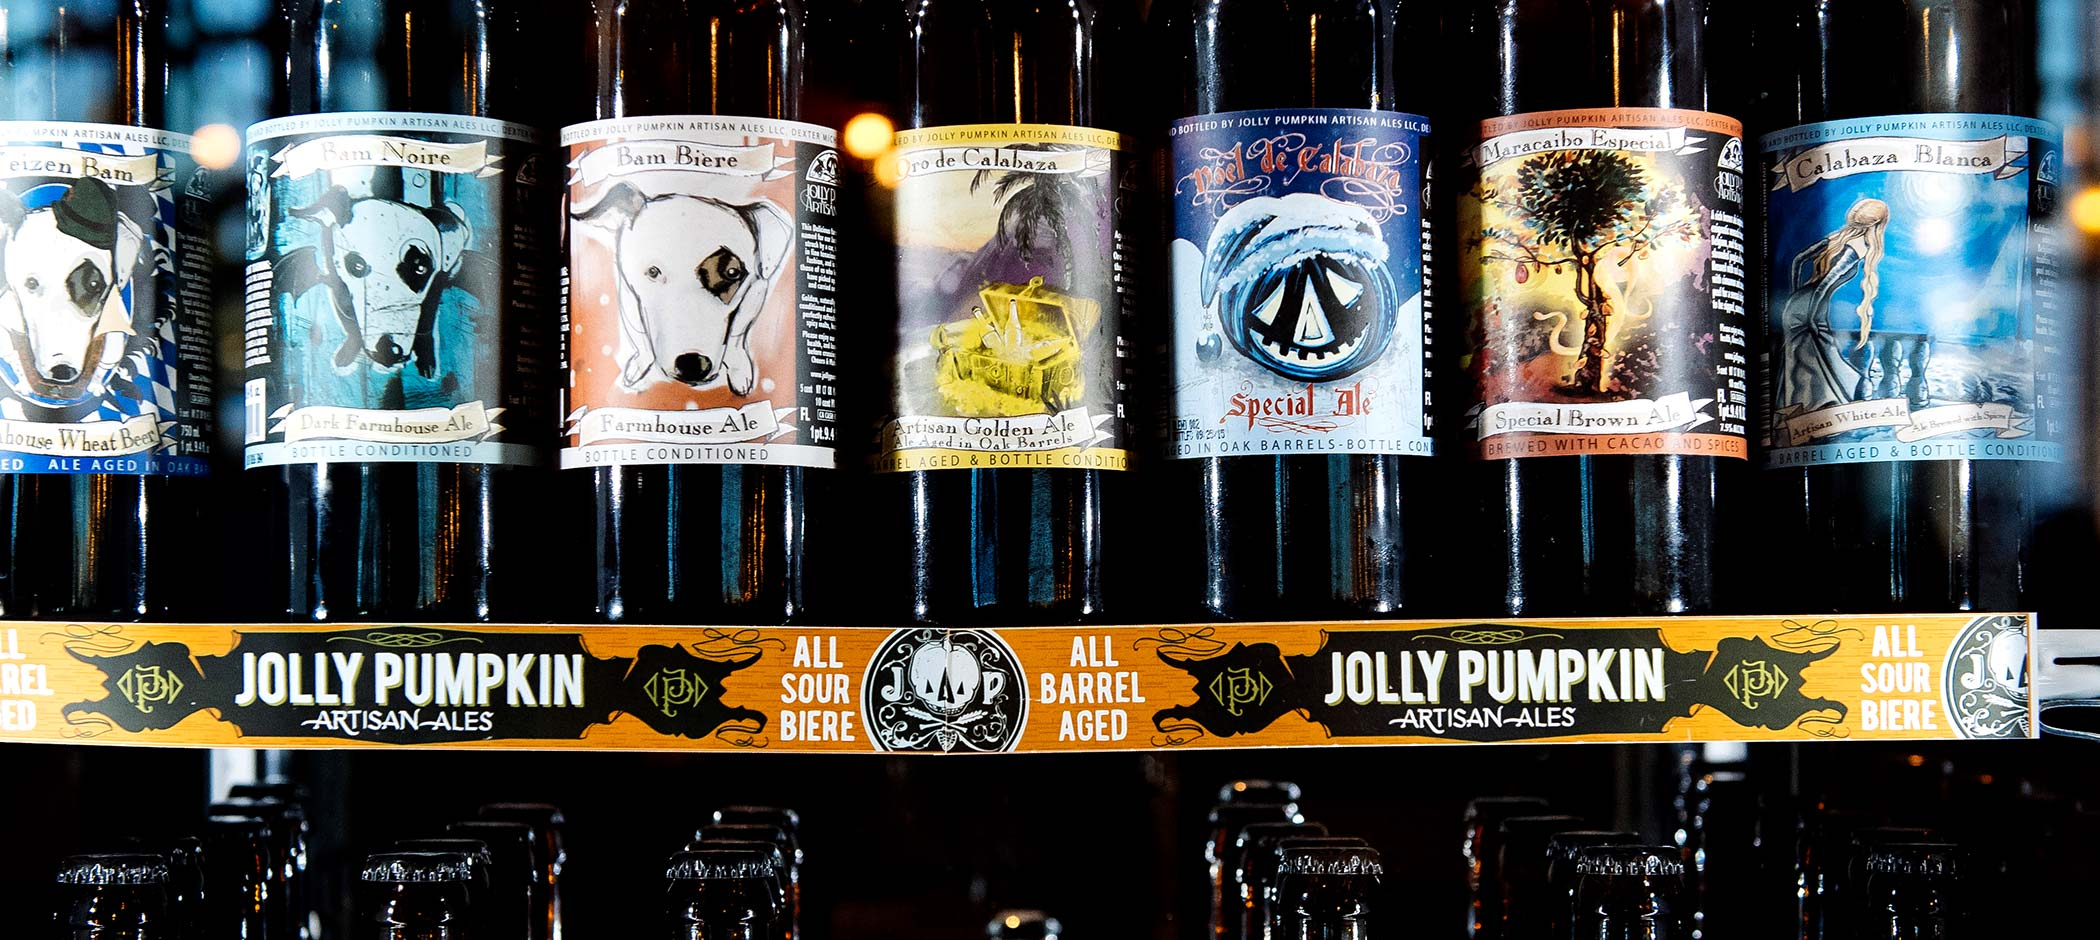 Jolly Pumpkin beer bottles